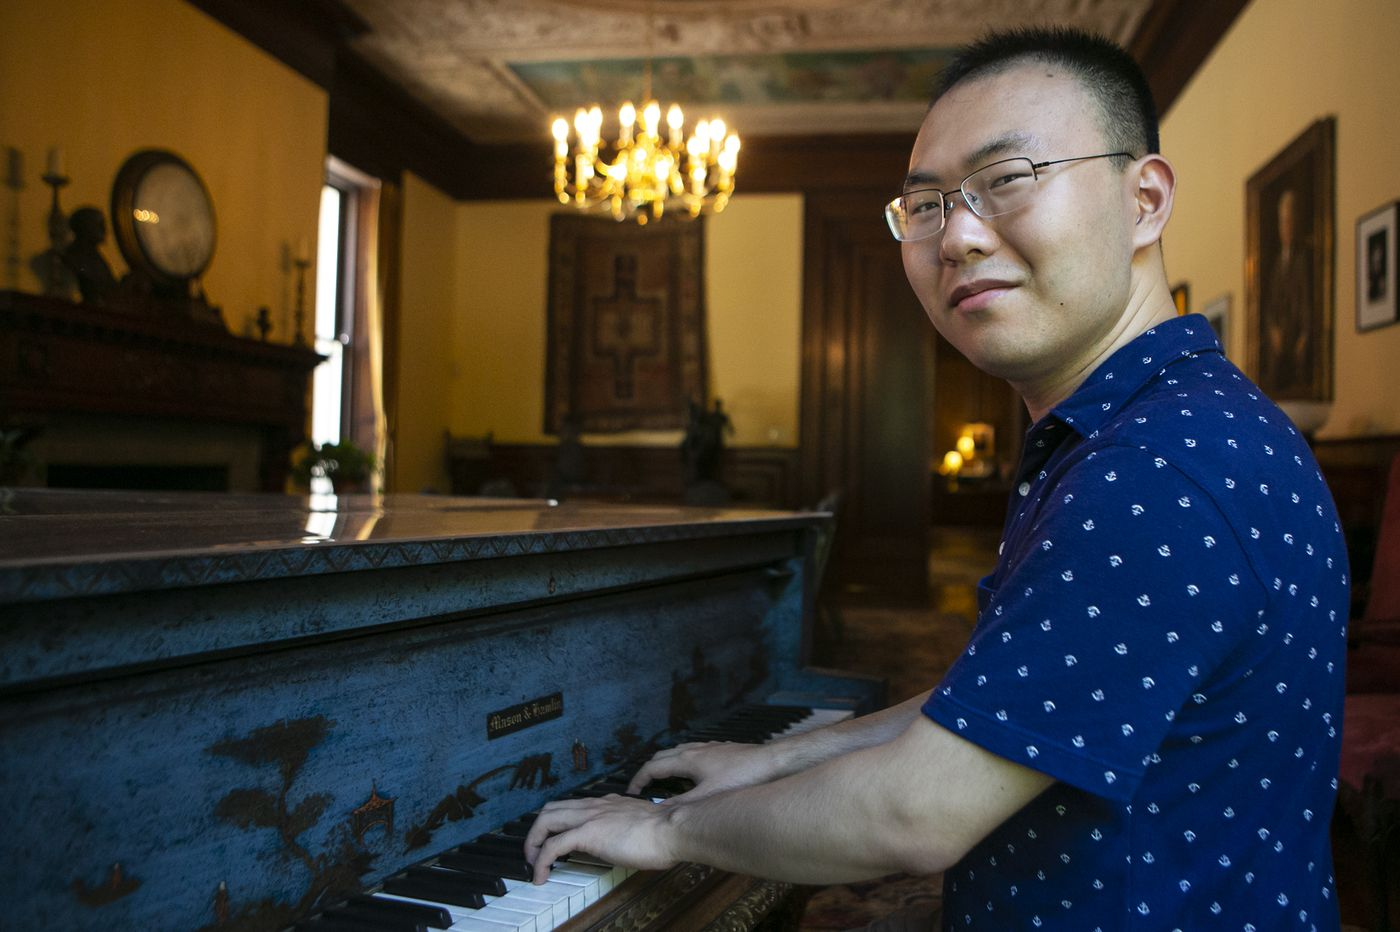 Anxiety nightmare comes horribly true for rising-star Philly pianist at Moscow competition